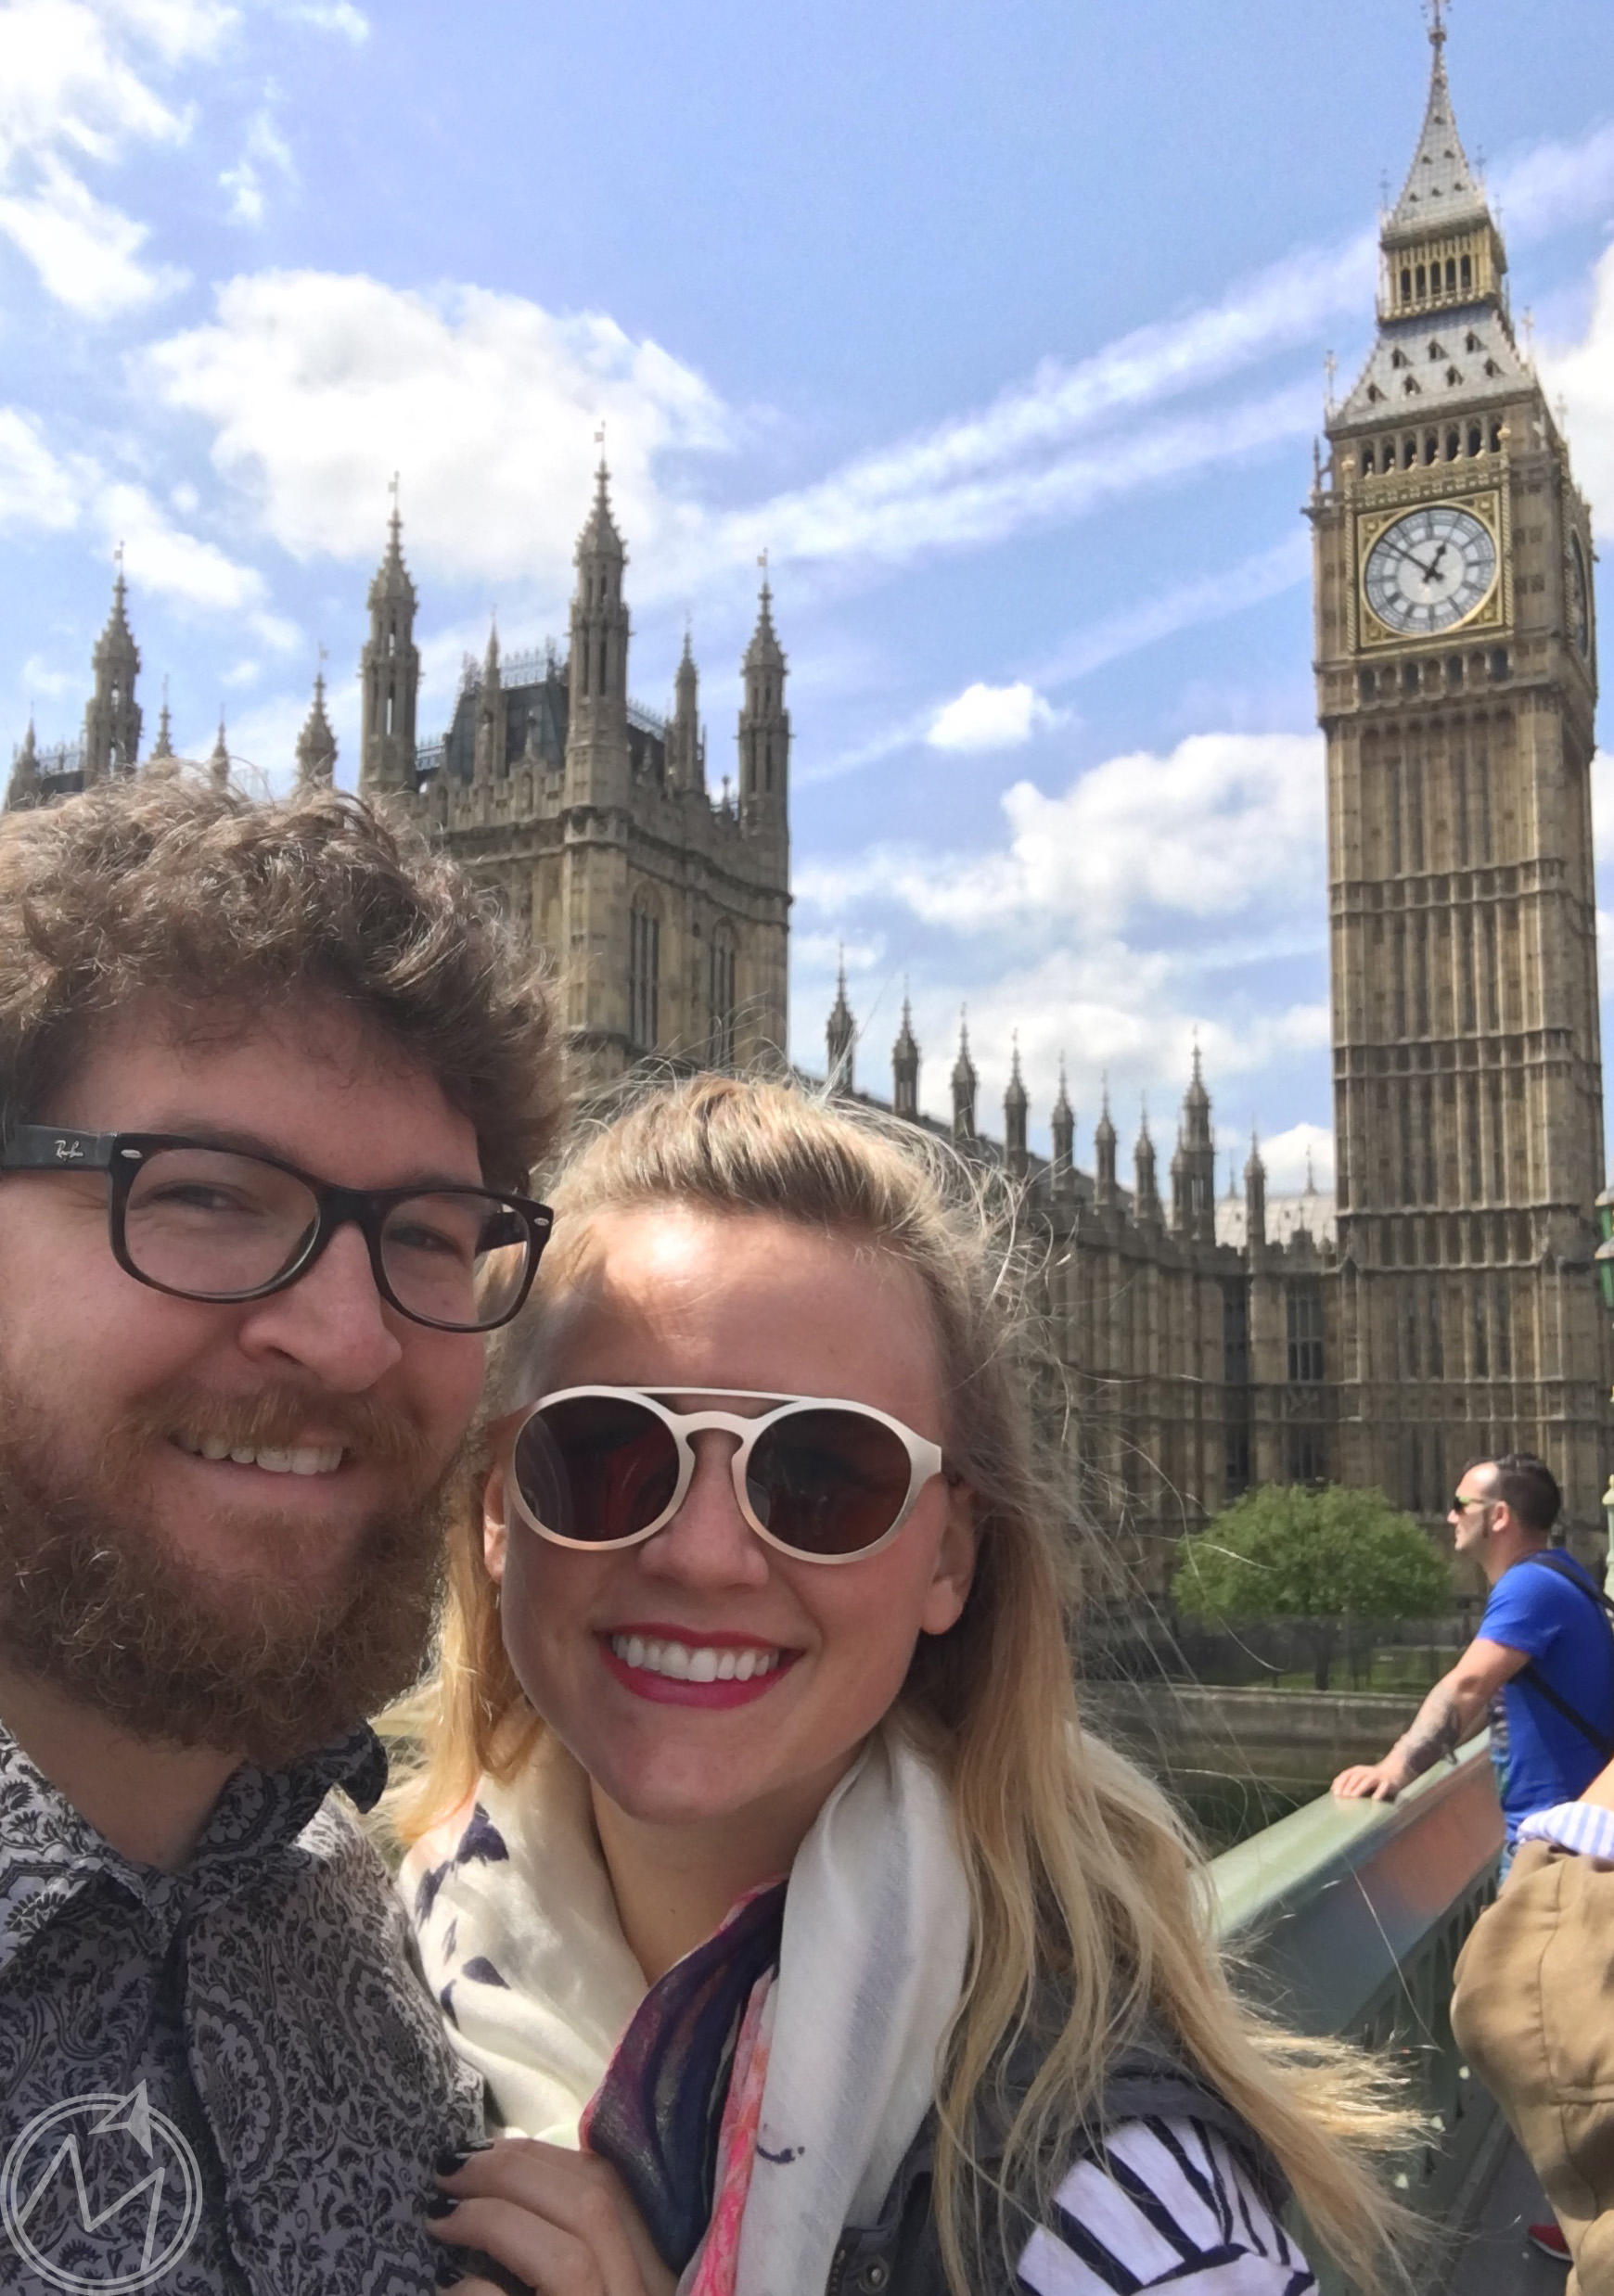 if you're by big ben and you don't take a tourist-y selfie, did you even go?